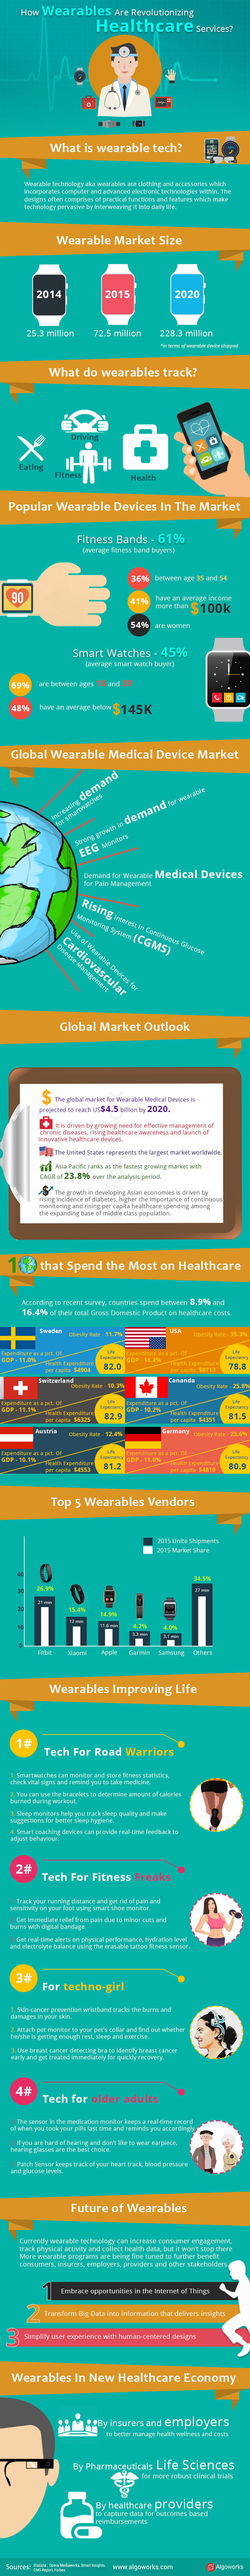 How Wearables Are Revolutionizing Healthcare Services? | An Infographic